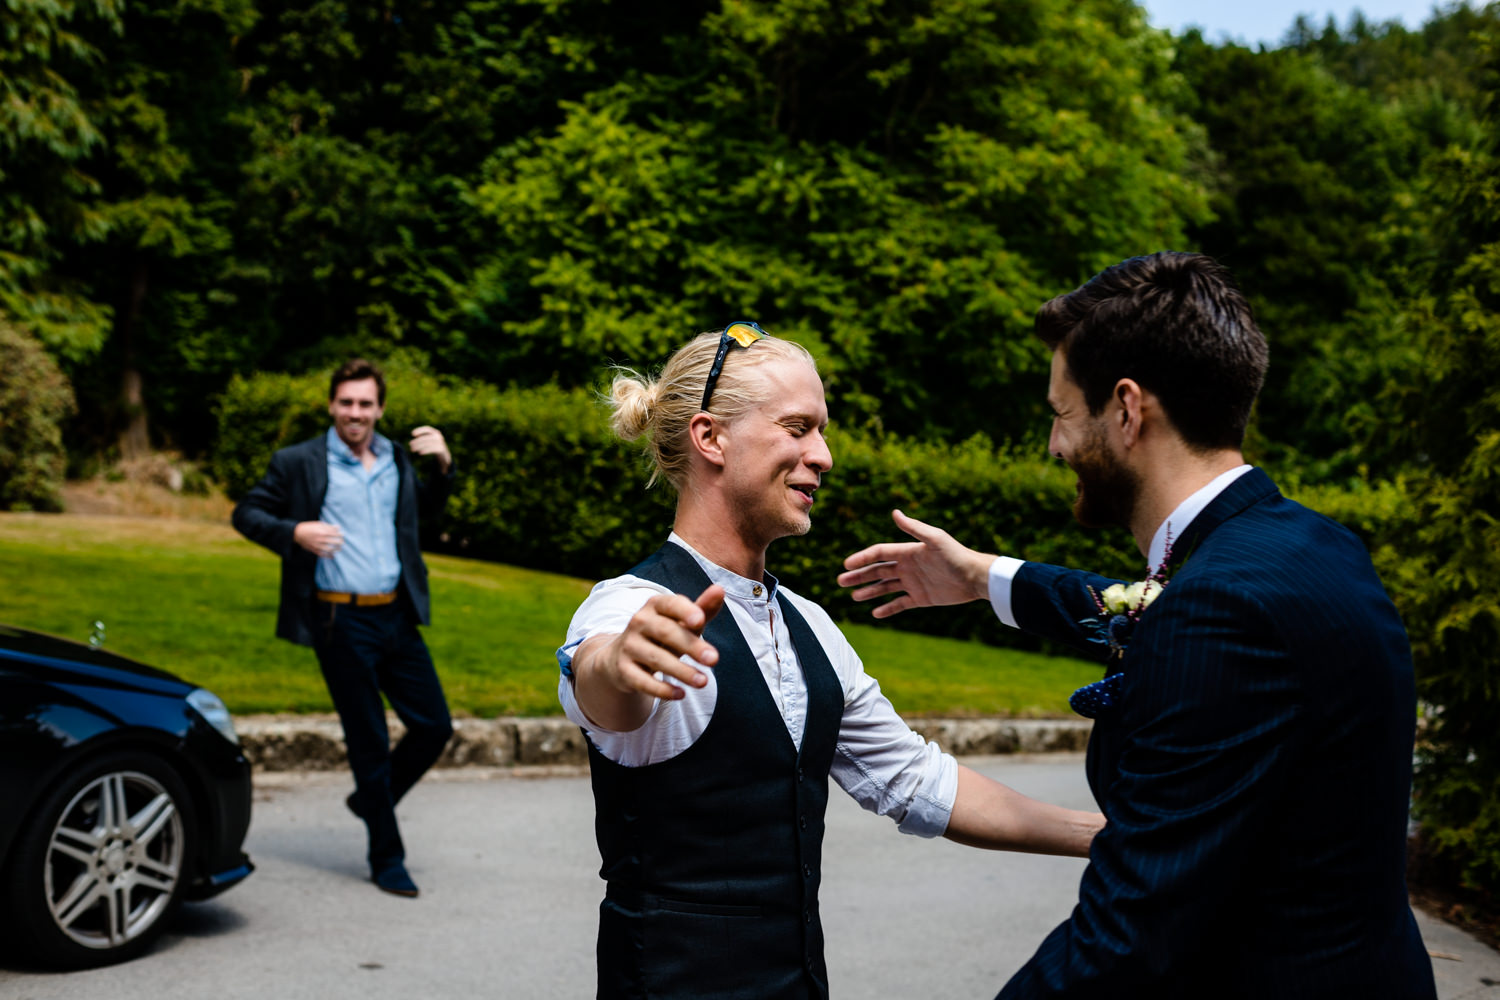 Guests greet the groom outside Whirlowbrook Hall.